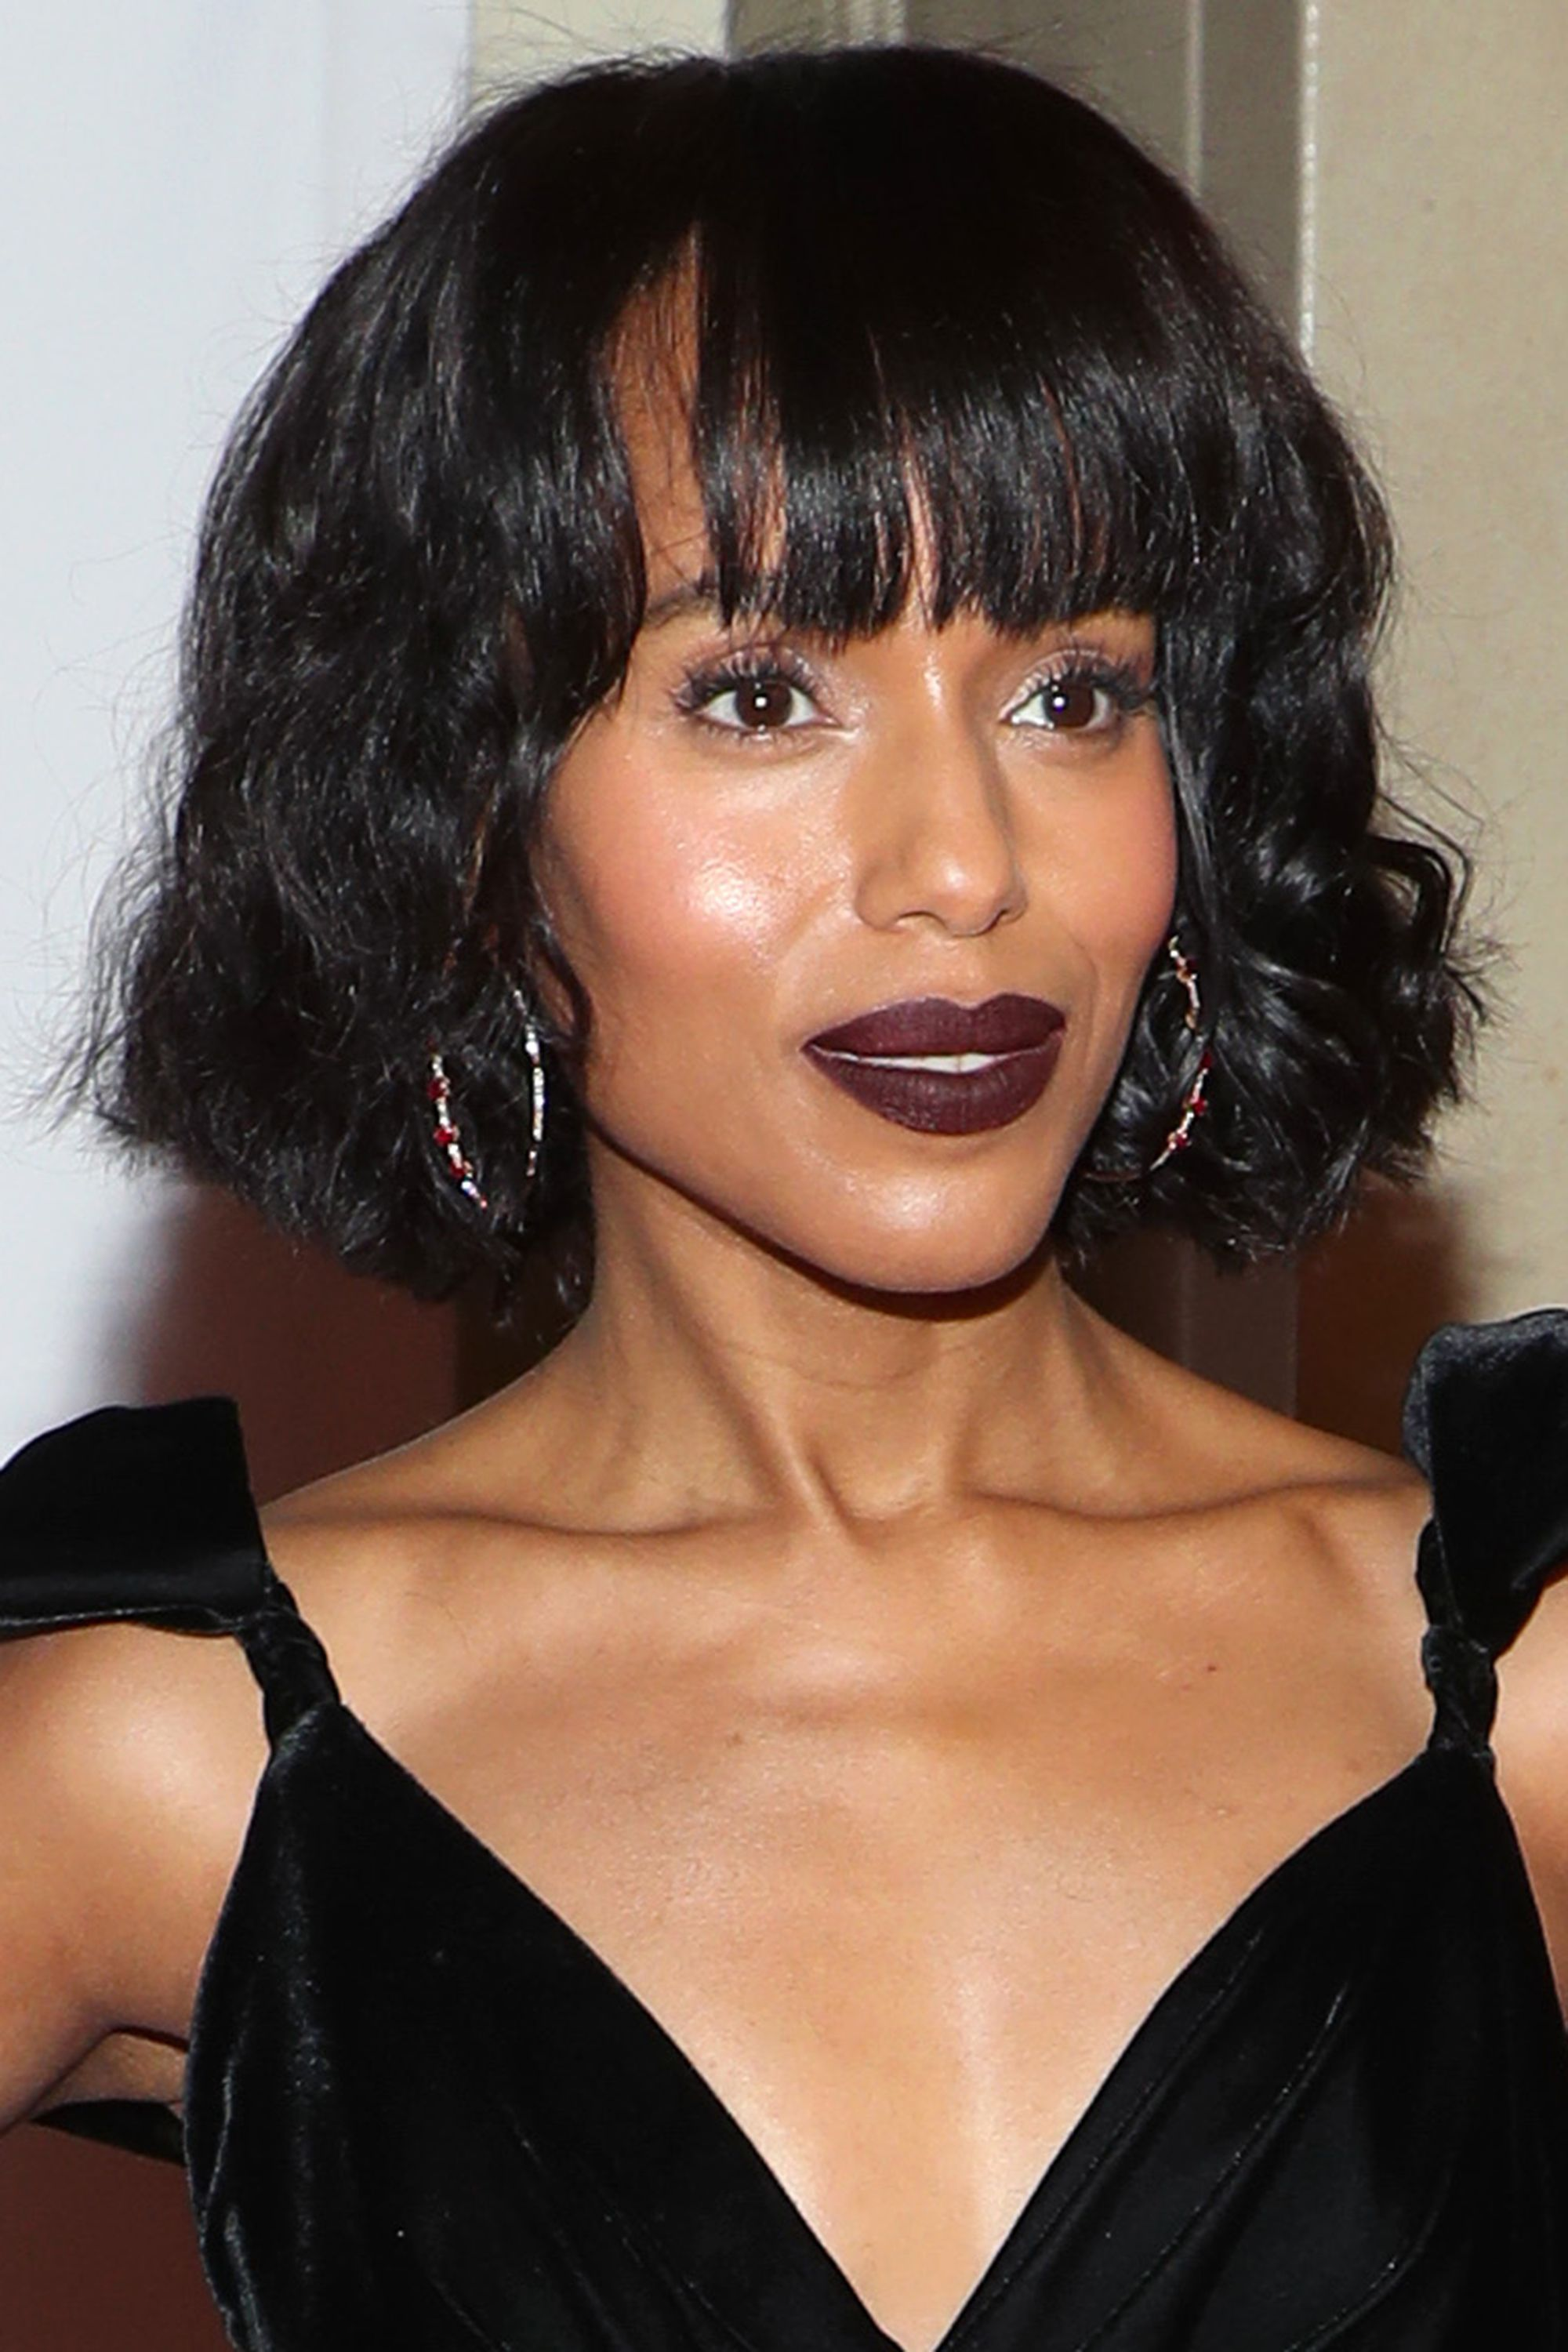 Bob hairstyle inspiration - 35+ Best celebrity bob haircuts